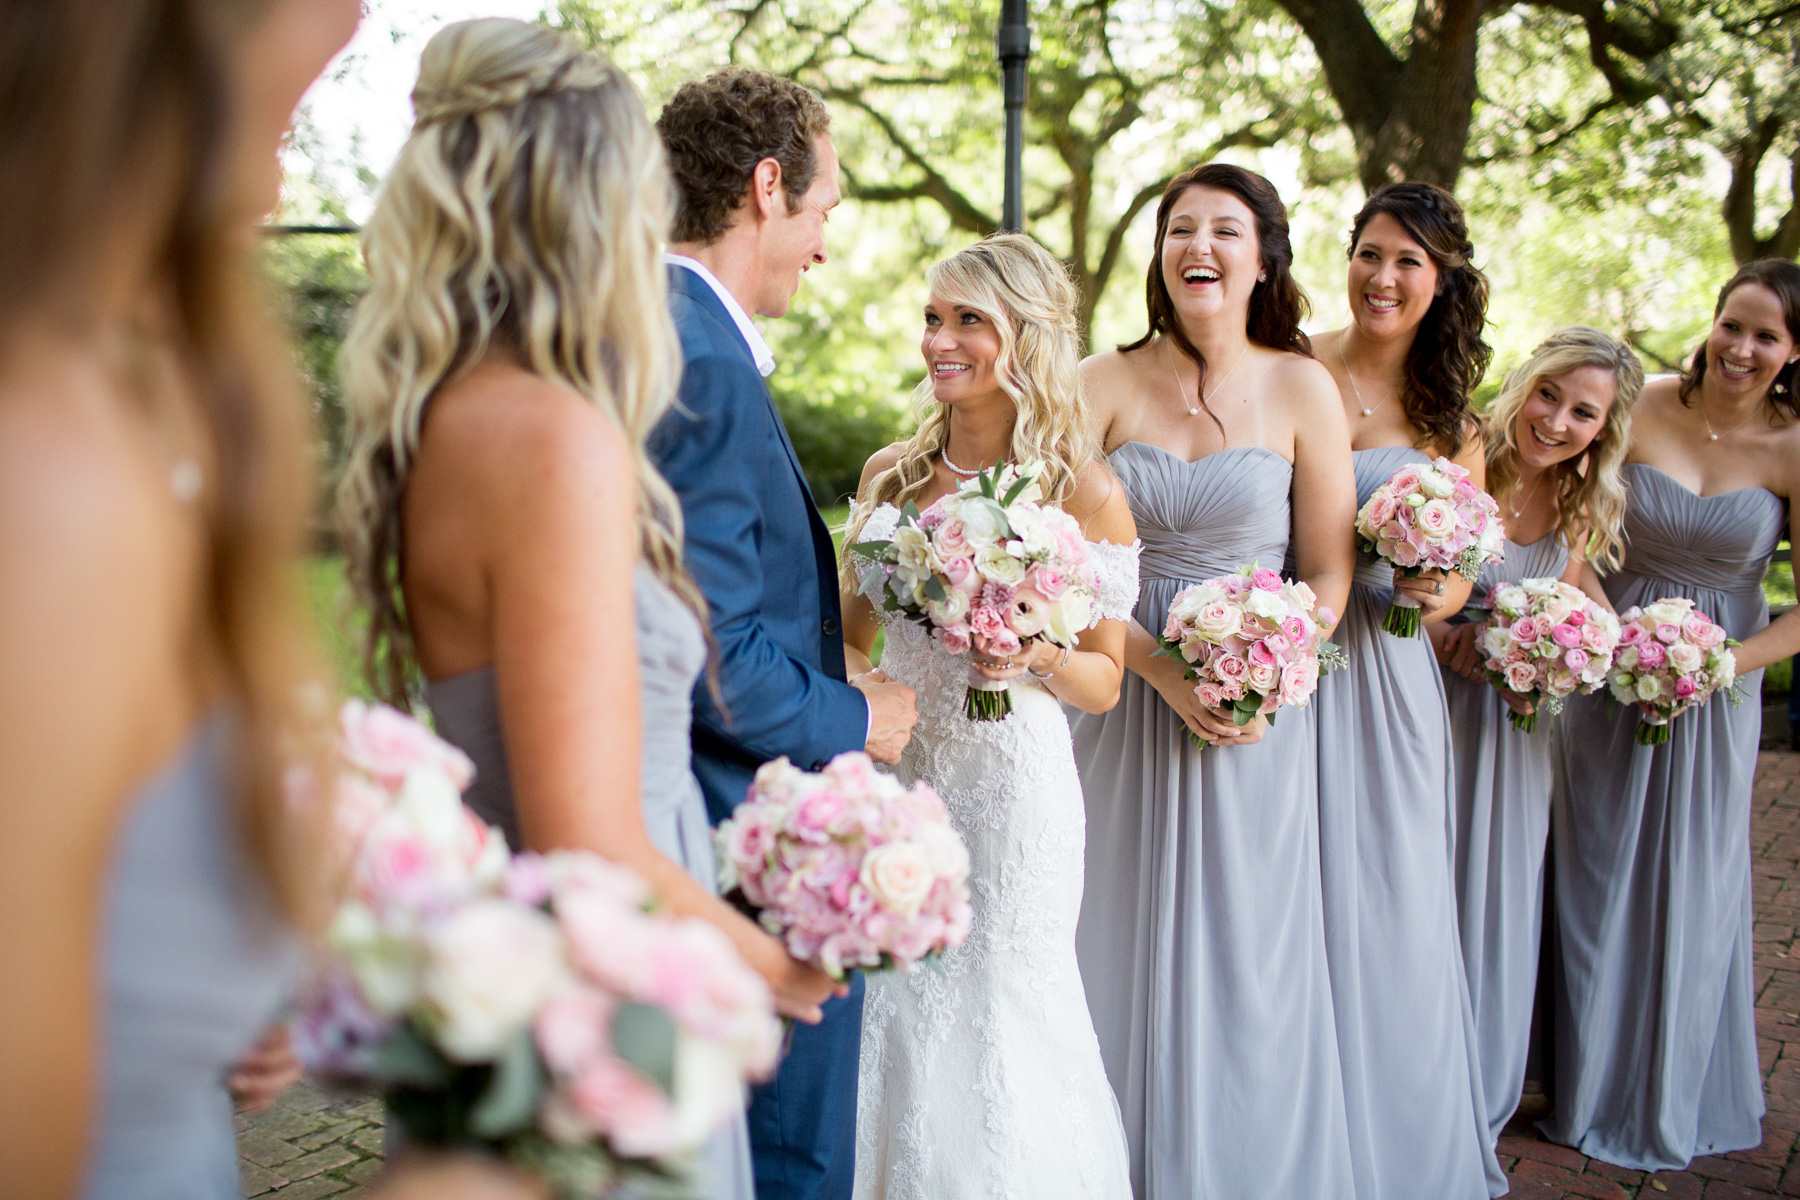 Charleston-best-wedding-photographer-SC-18.jpg